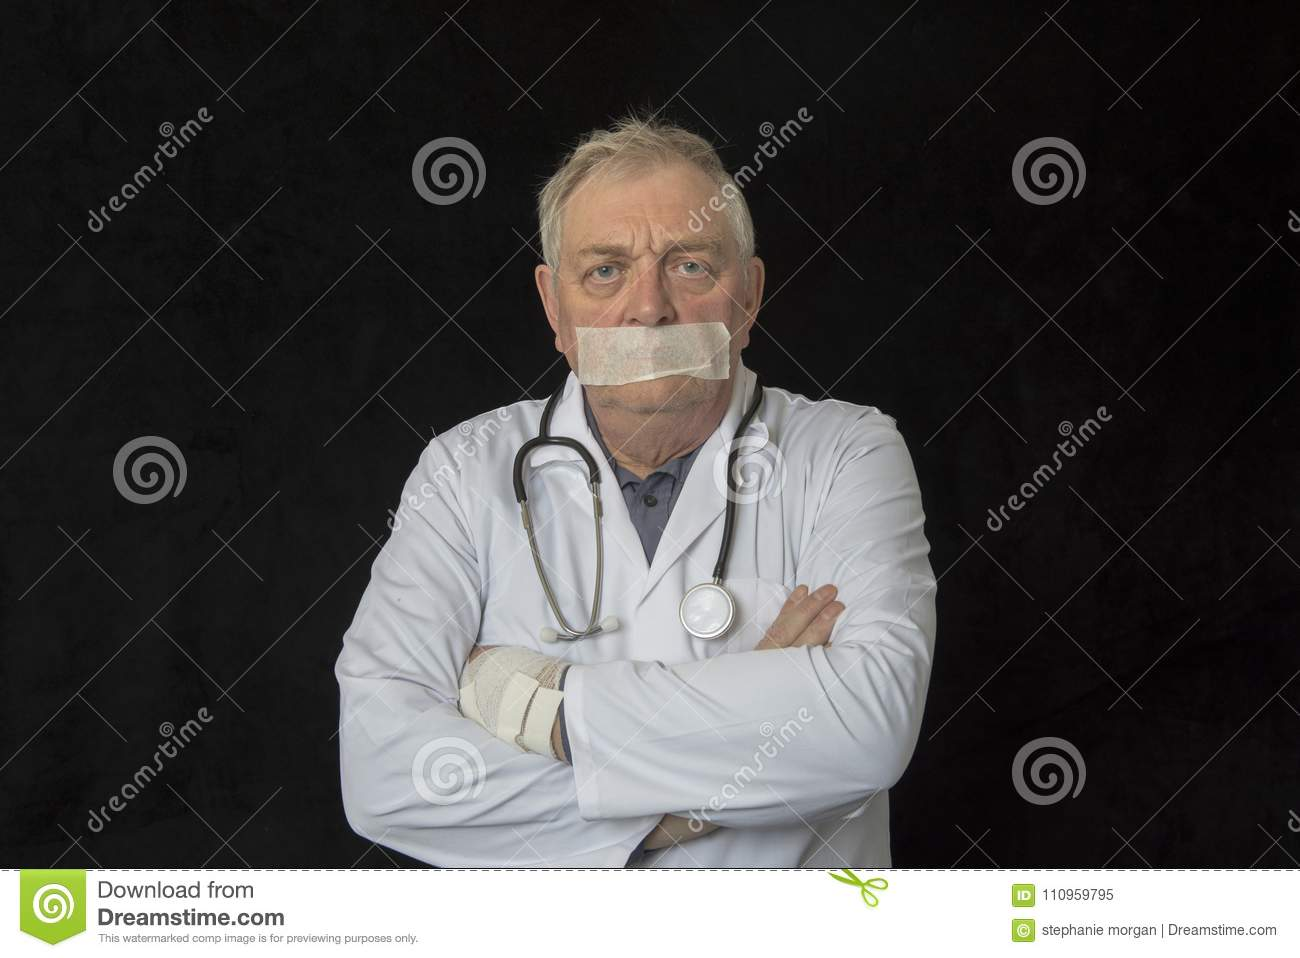 Mature doctor with tape across his mouth